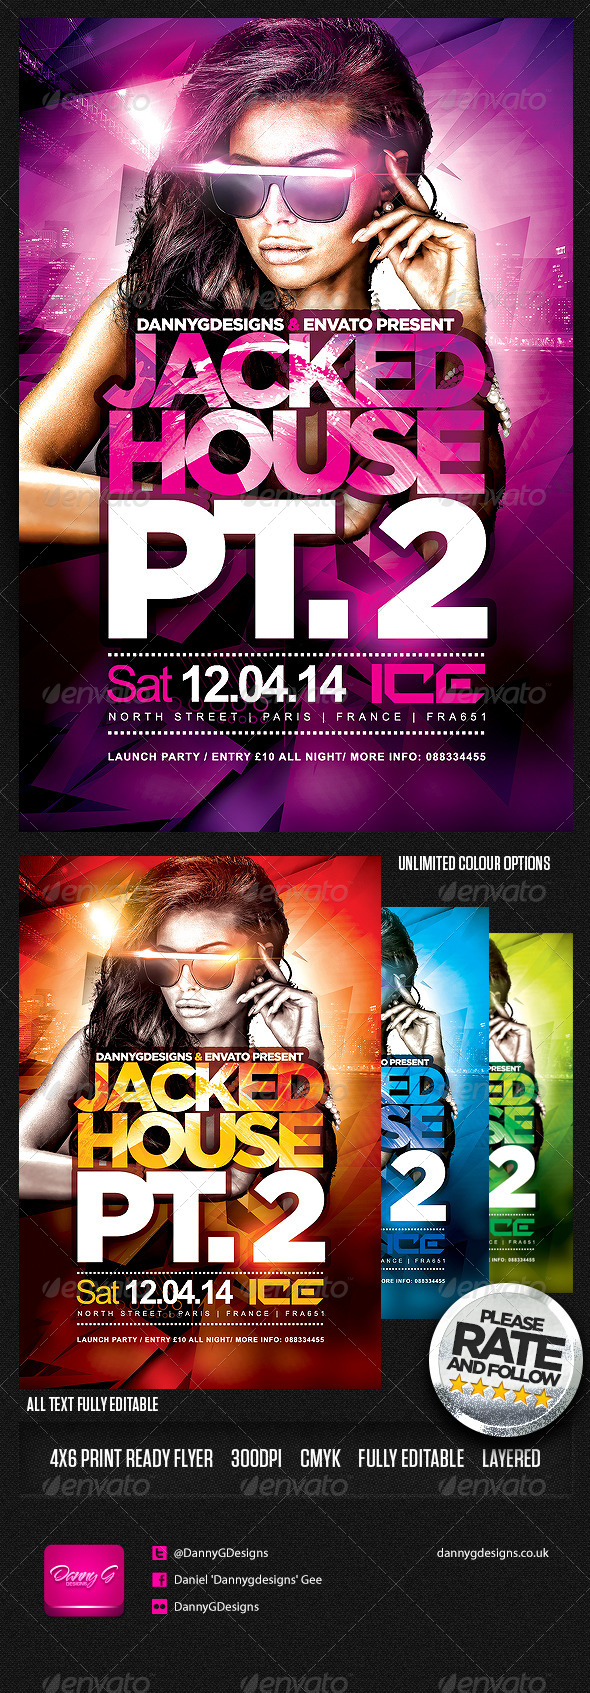 Jacked House Flyer Template PSD - Clubs & Parties Events